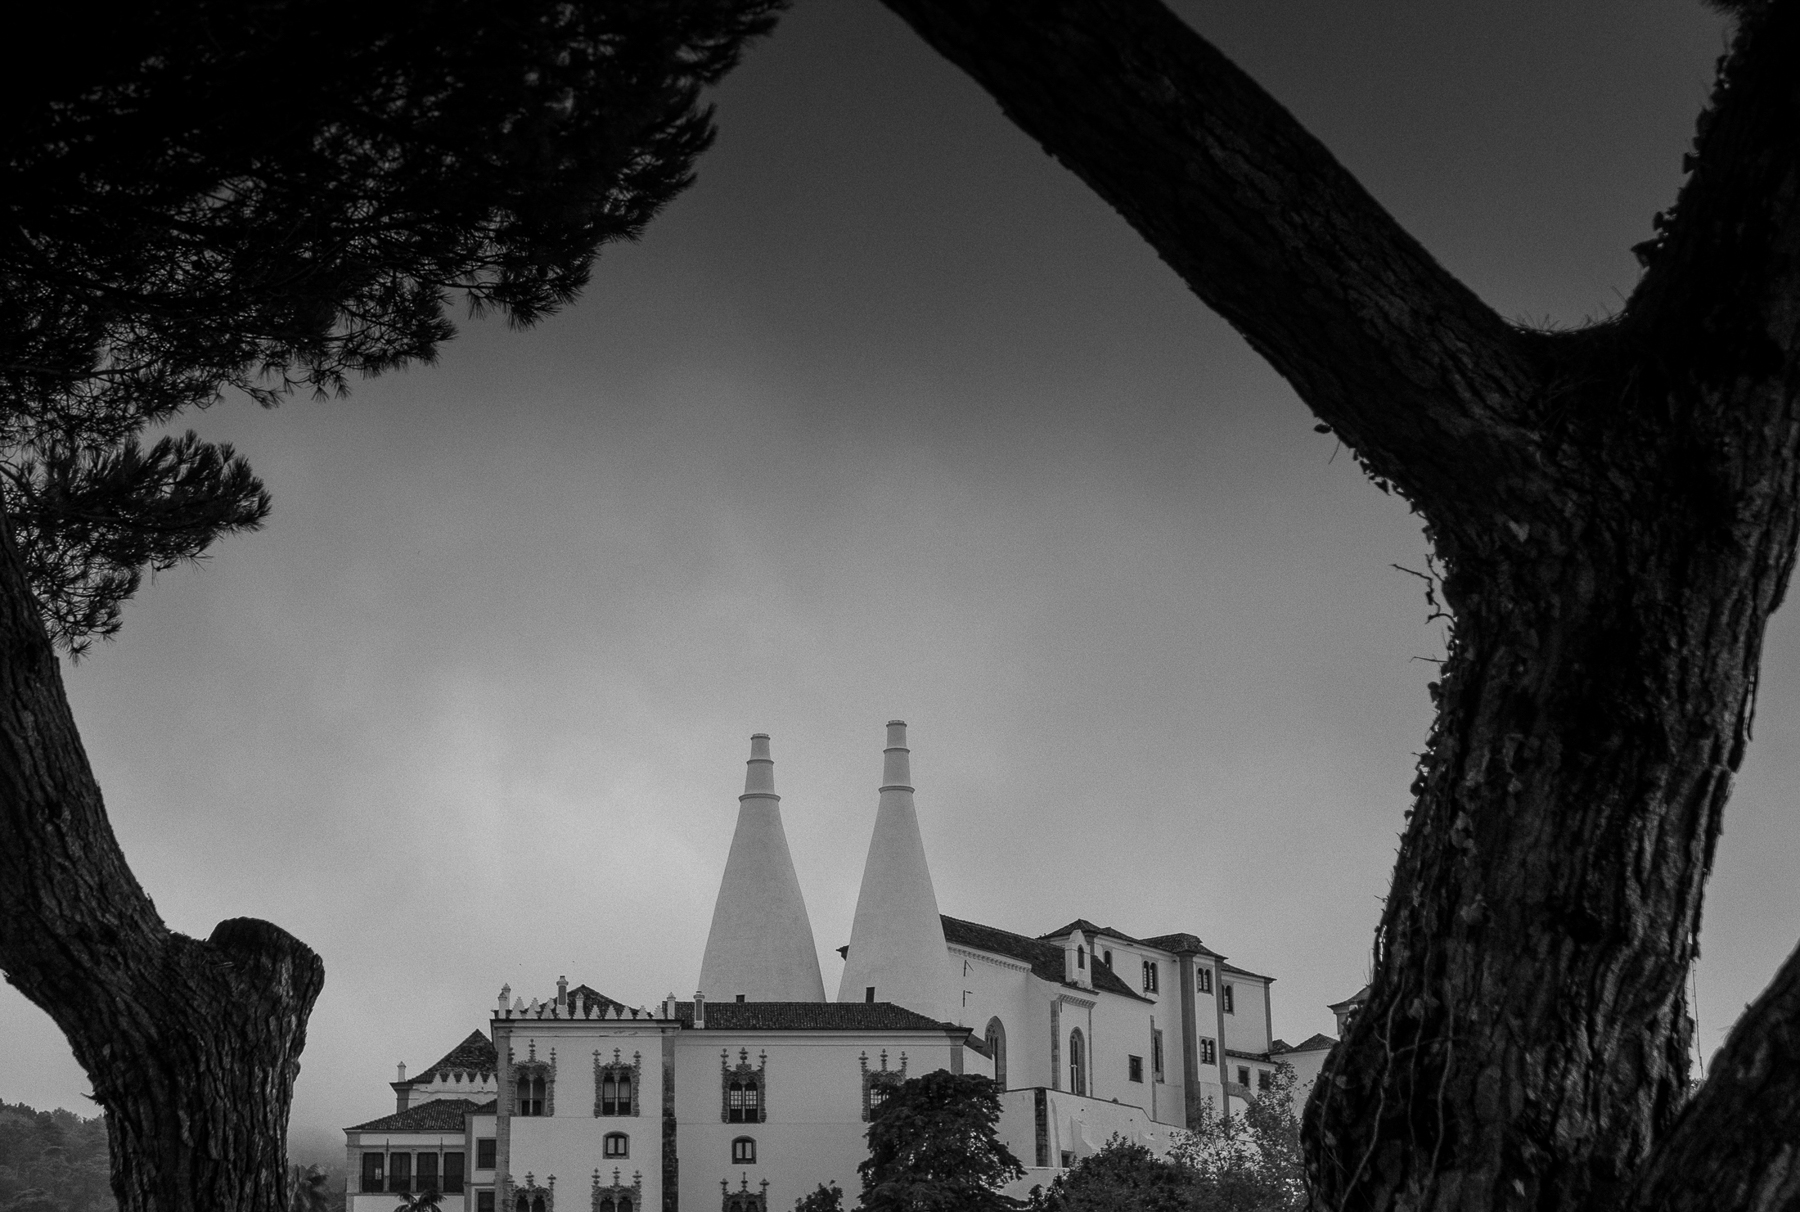 Photo workshops in Lisbon and the Algarve- 15th century Sintra Royal Palace with curious twin chimneys